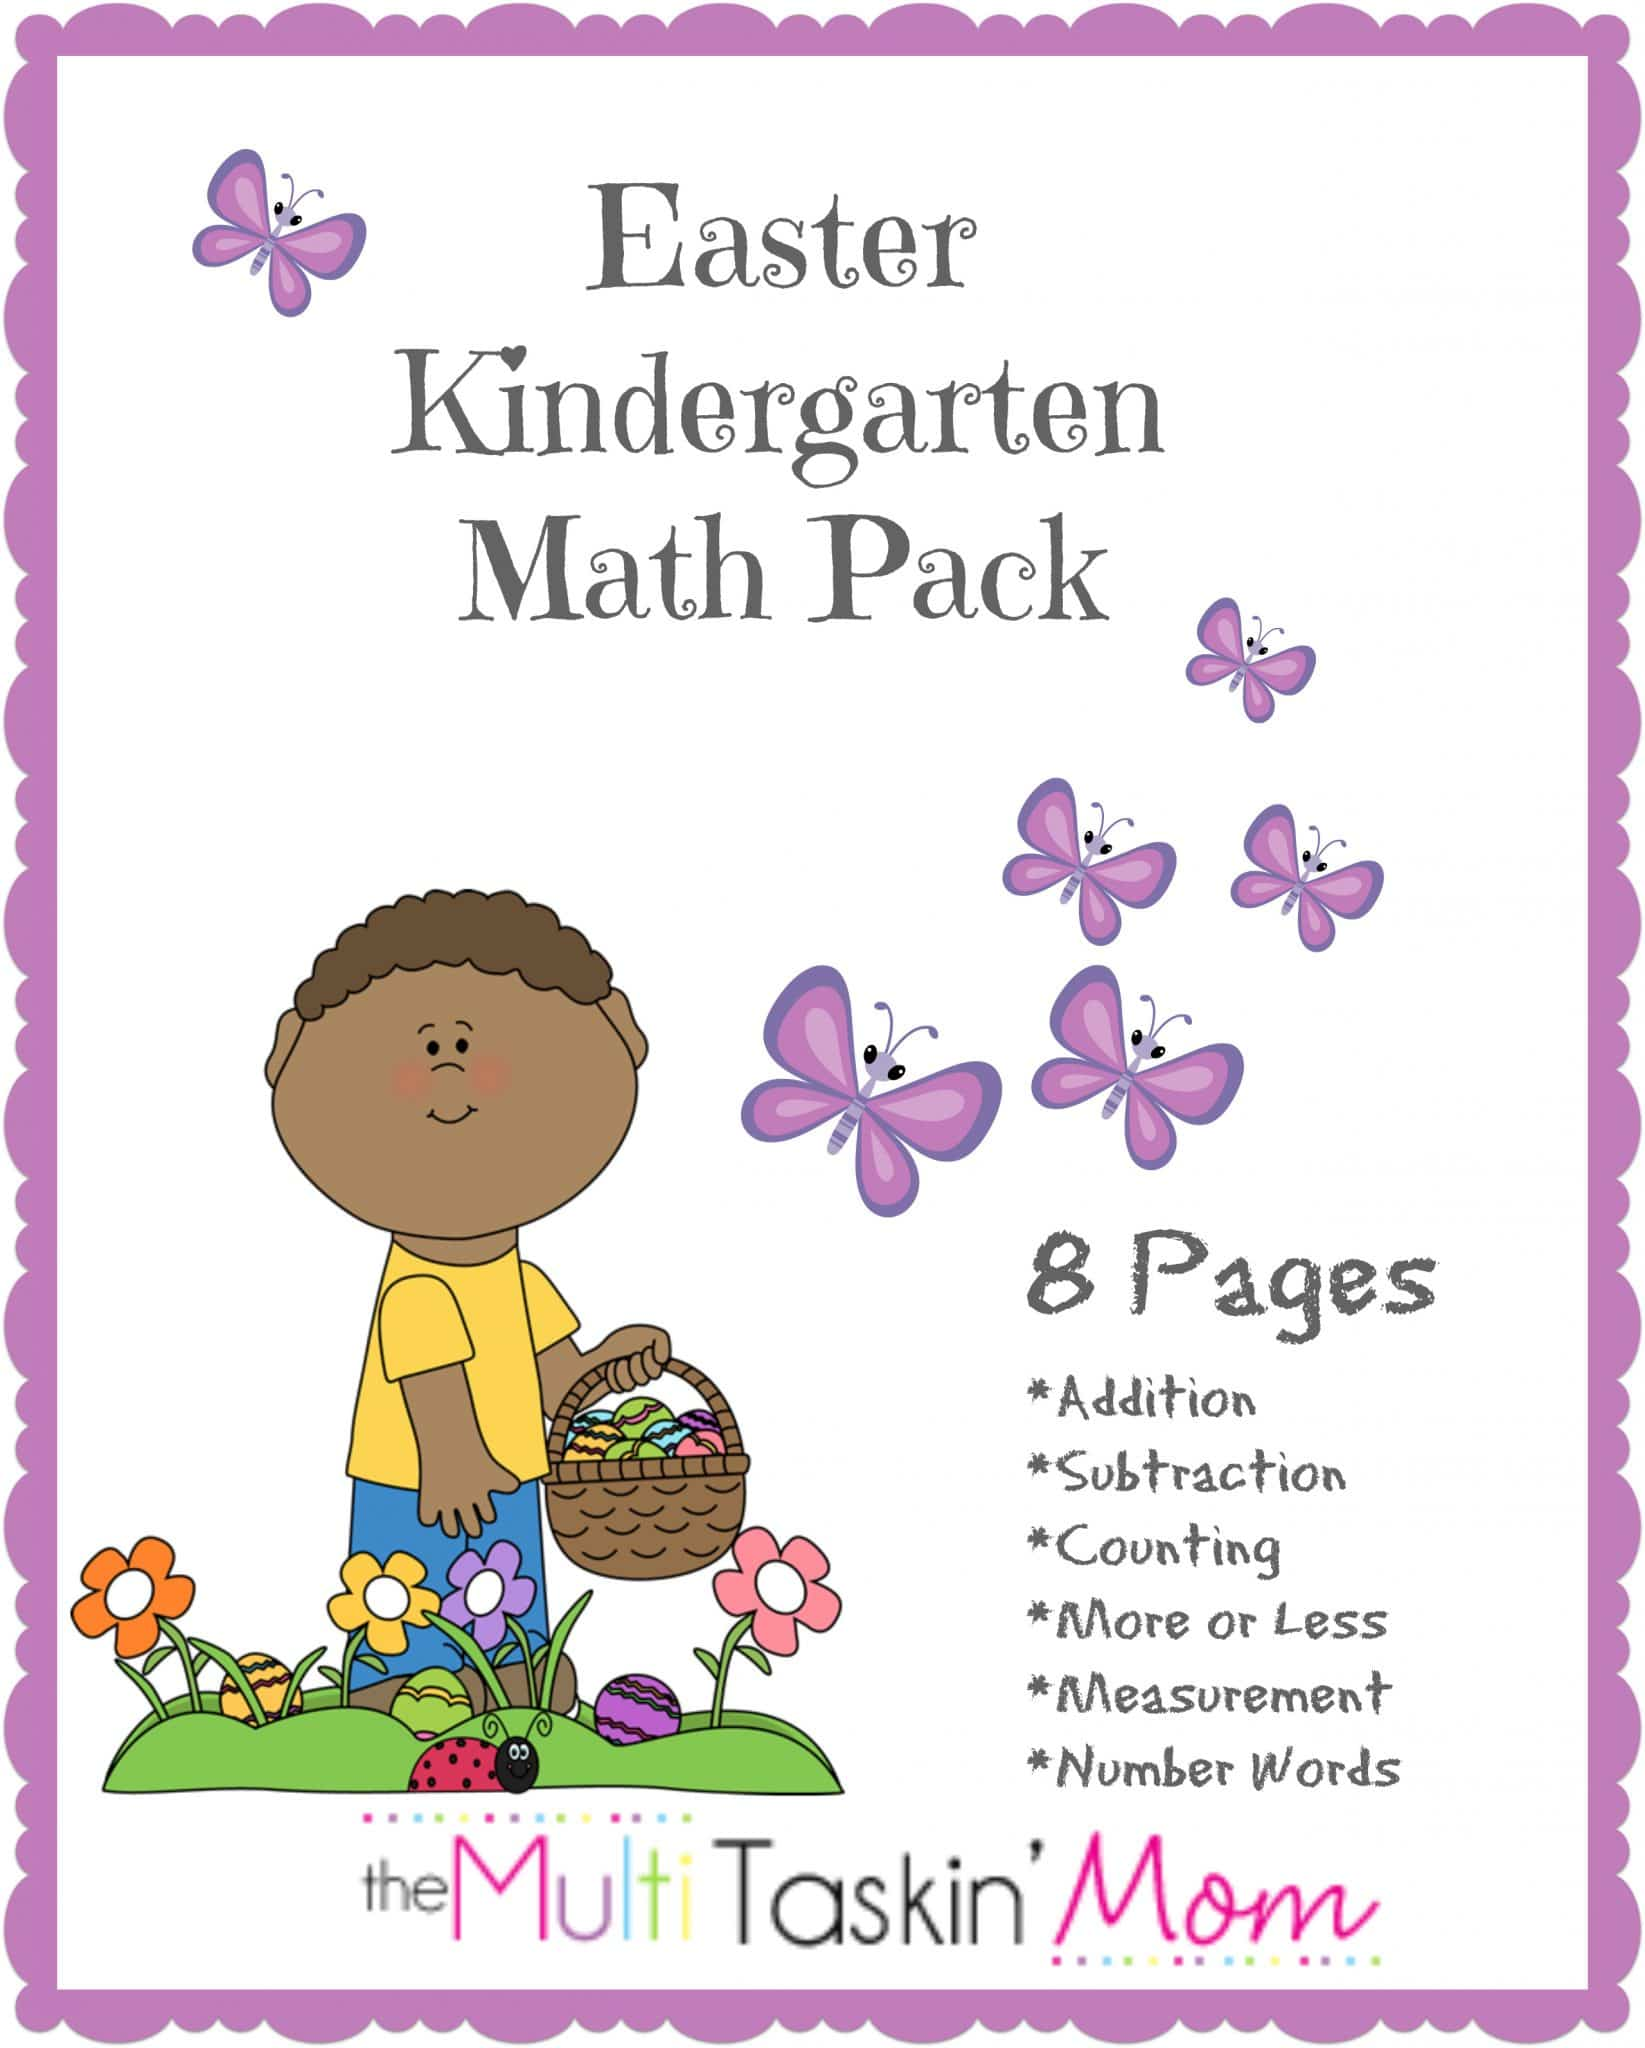 Free Easter Kindergarten Math Pack